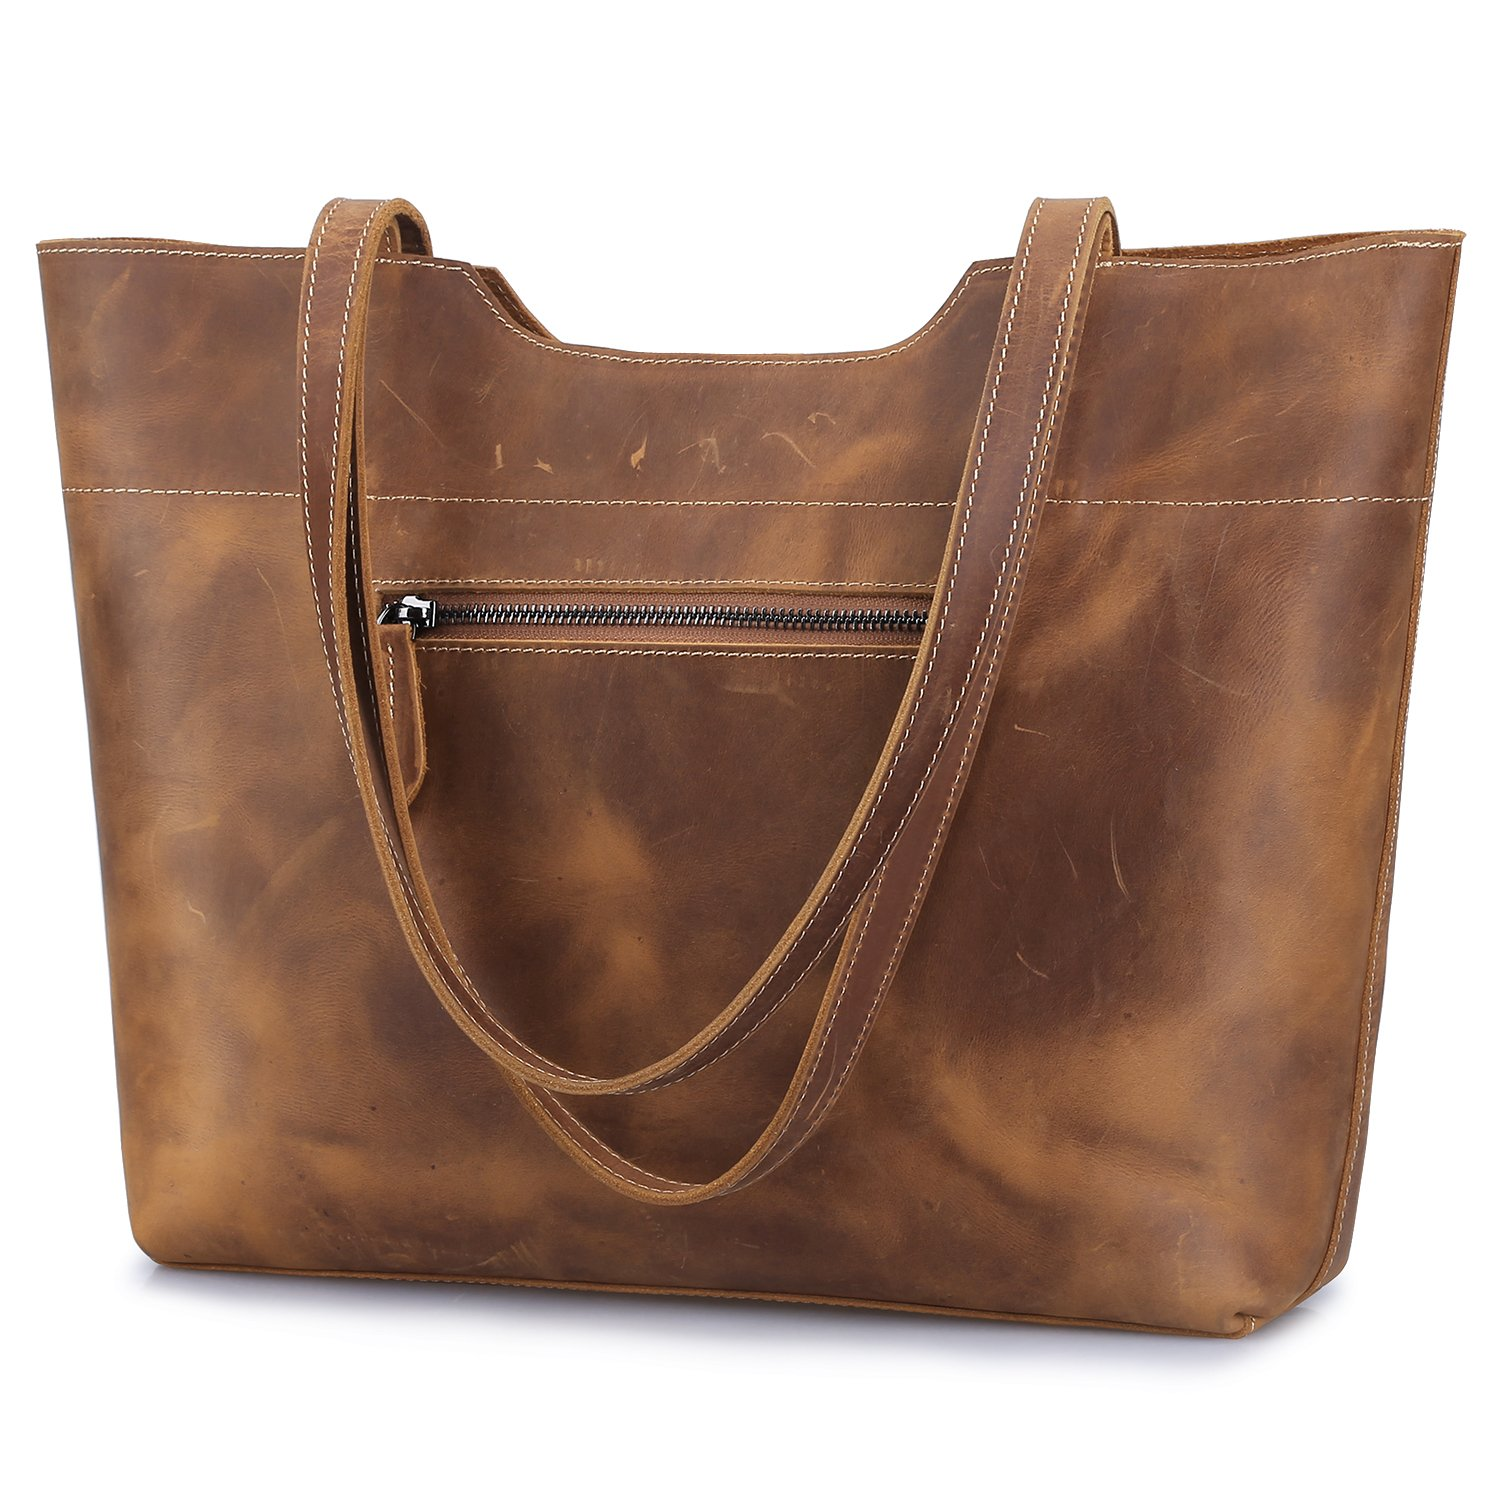 S-ZONE Vintage Genuine Crazy Horse Leather Tote Shoulder Bag Purse with Back Zipper Pocket (Light Brown) by S-ZONE